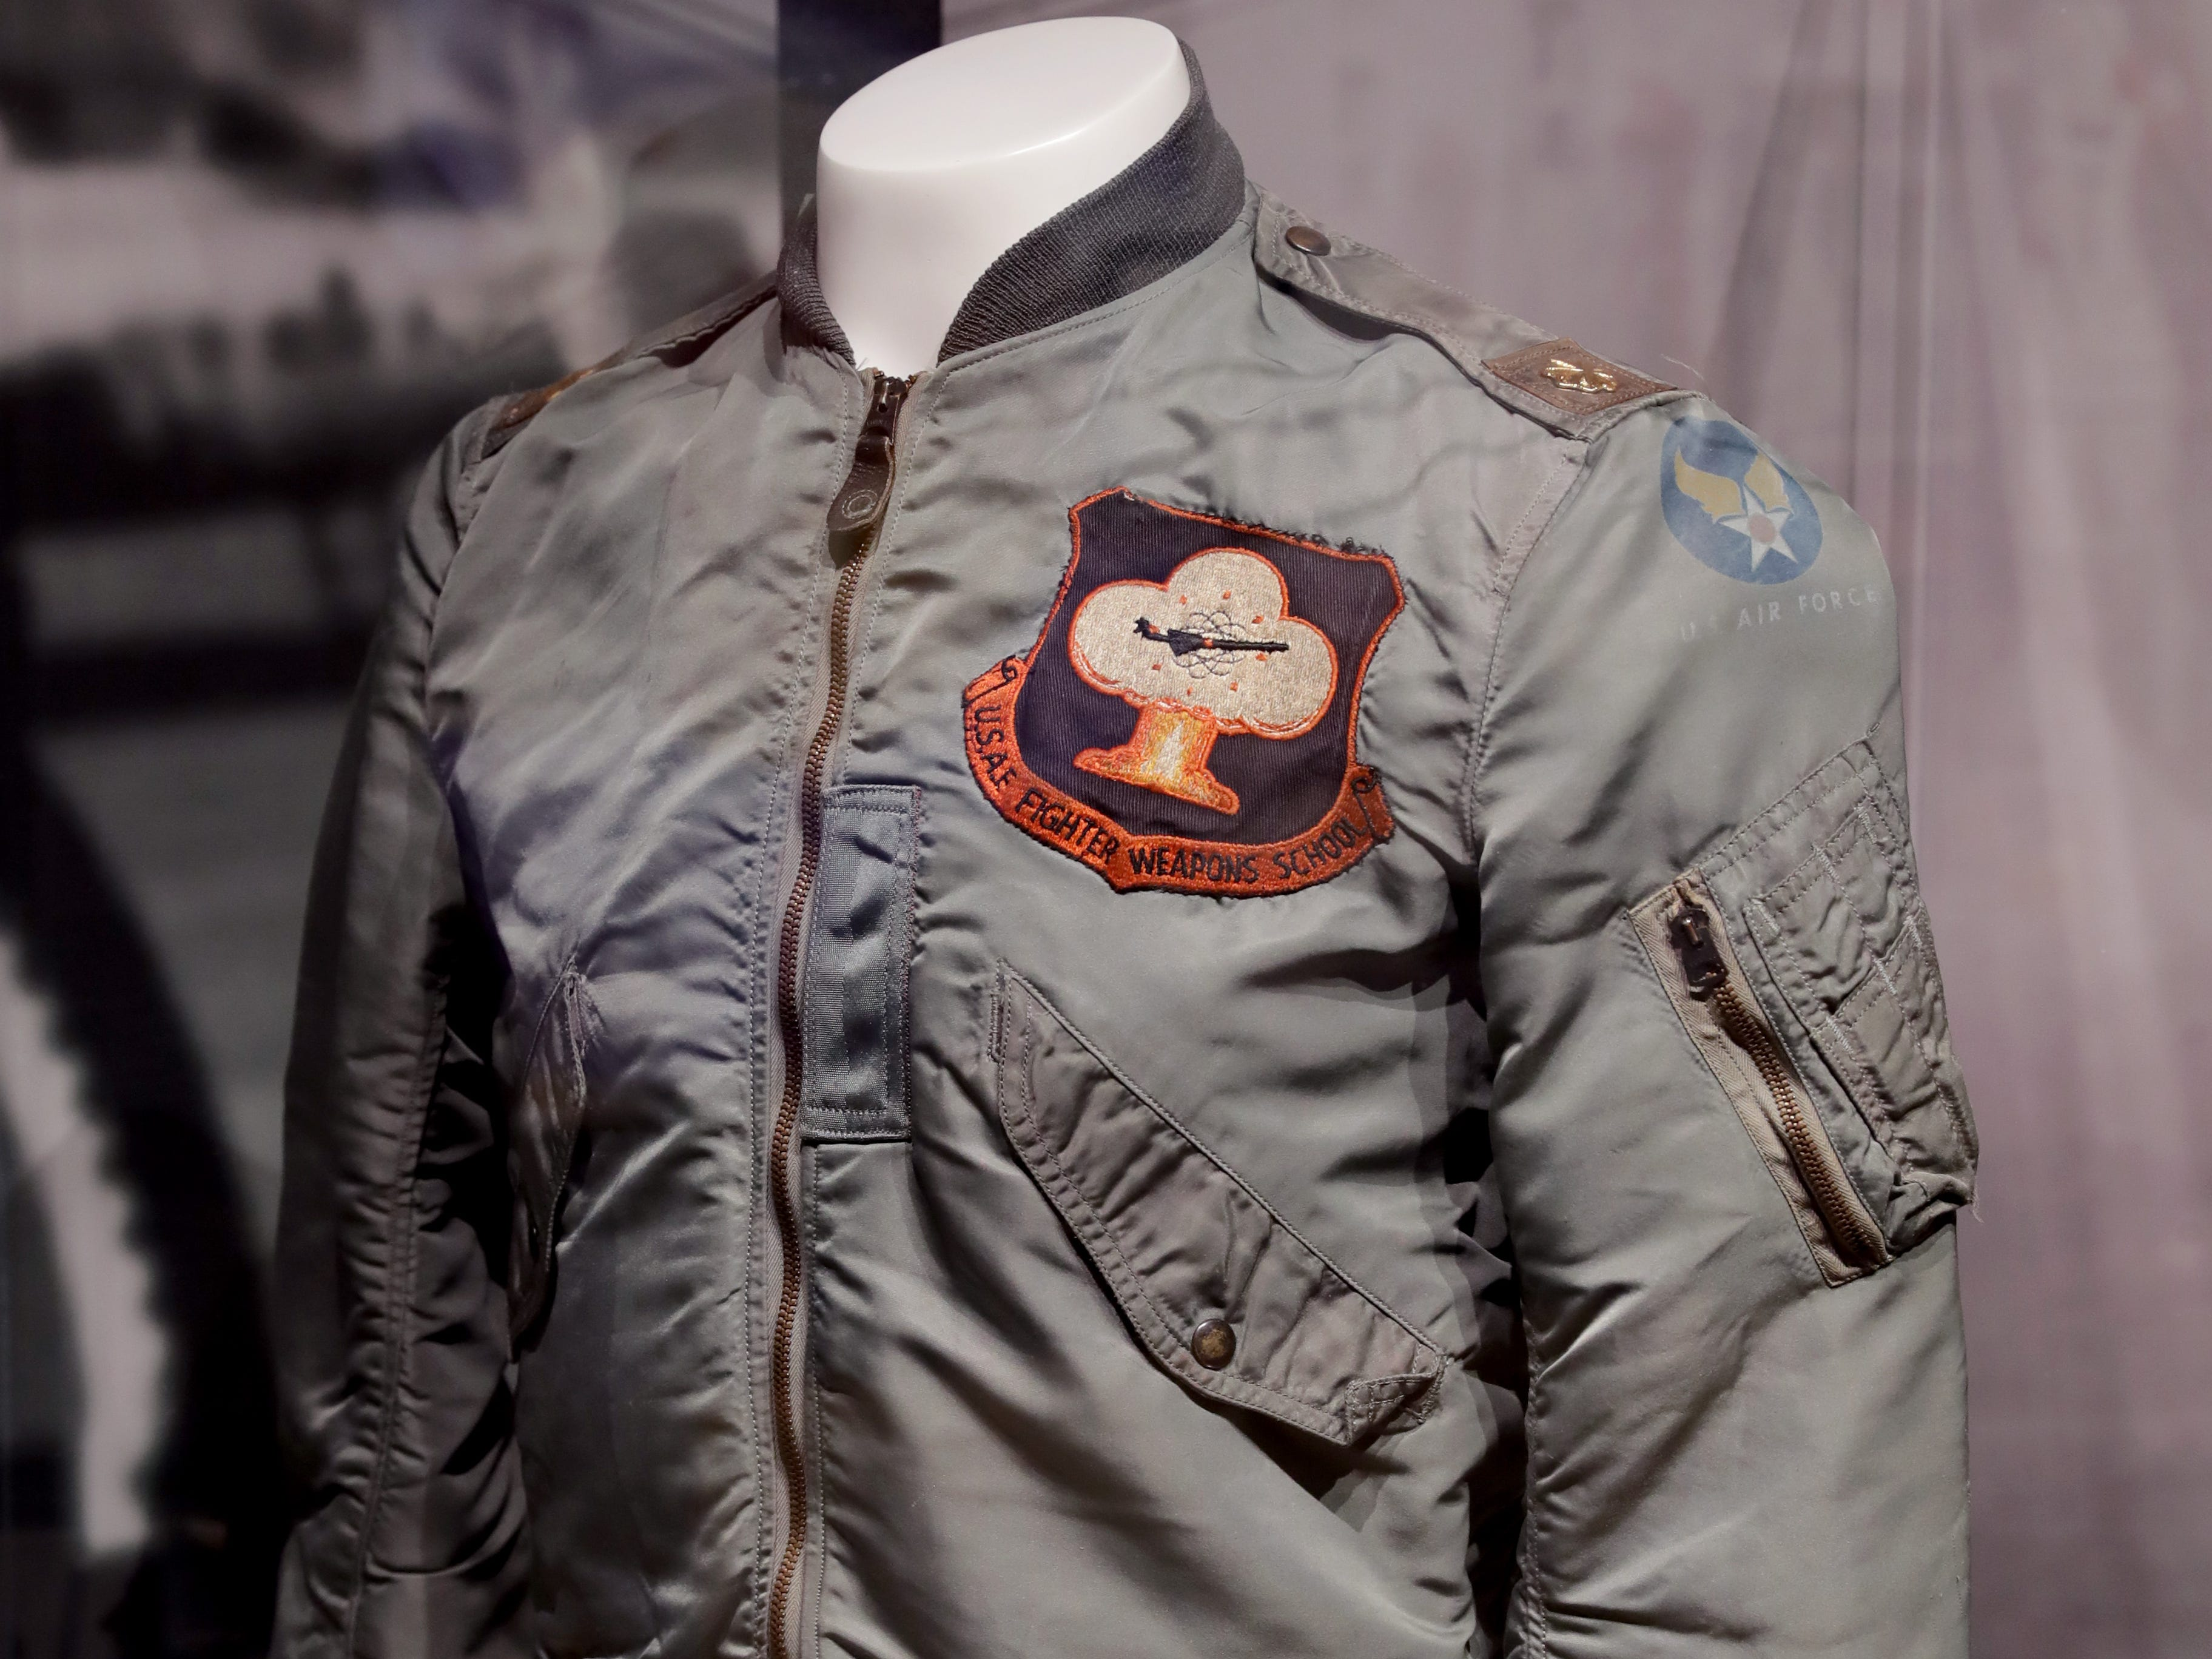 This U.S. Air Force flight jacket worn by astronaut Frank Borman is part of a new exhibit at the EAA AirVenture Museum in Oshkosh.